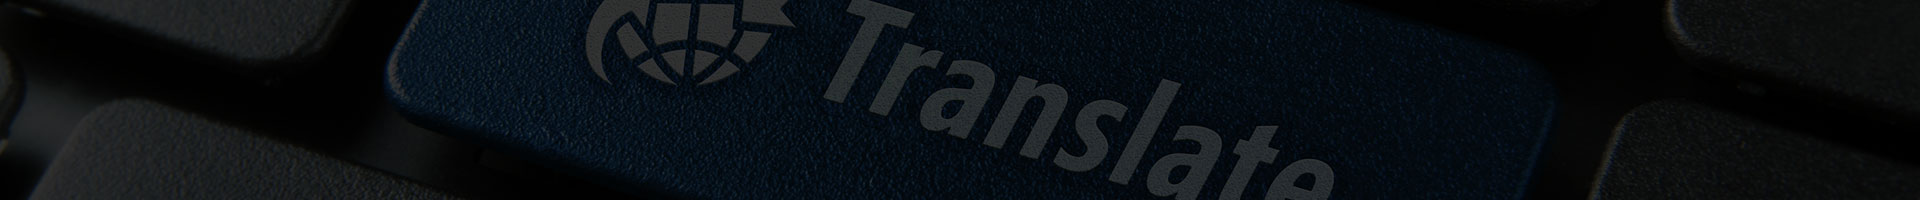 http://realtimetranslatorsltd.com/uploads/../images/servicesbanner.jpg